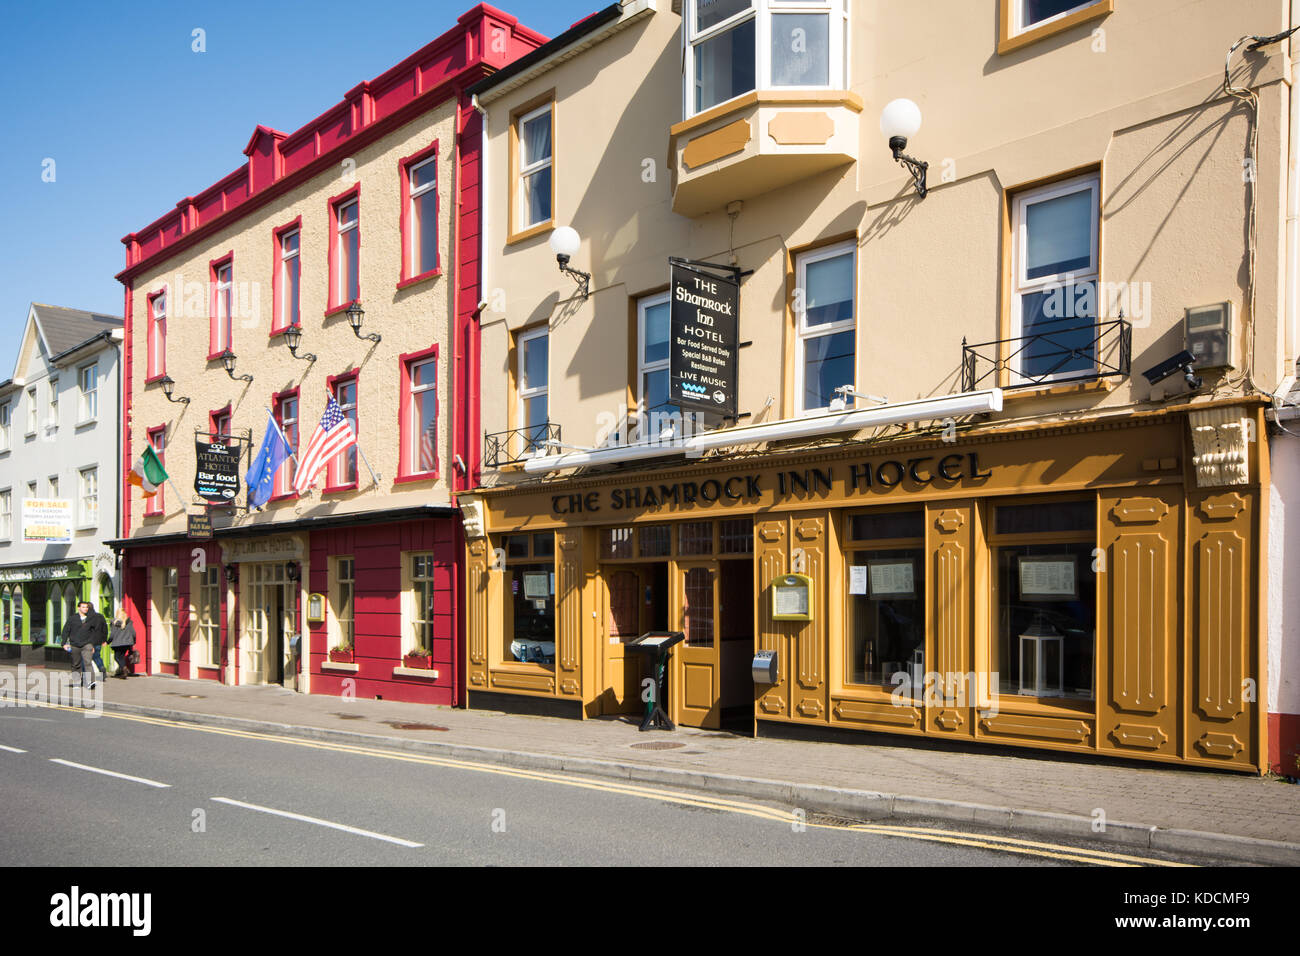 The Shamrock Inn and Atlantic hotels on the main street of Lahinch in county Clare on the Wild Atlantic Way on the - Stock Image